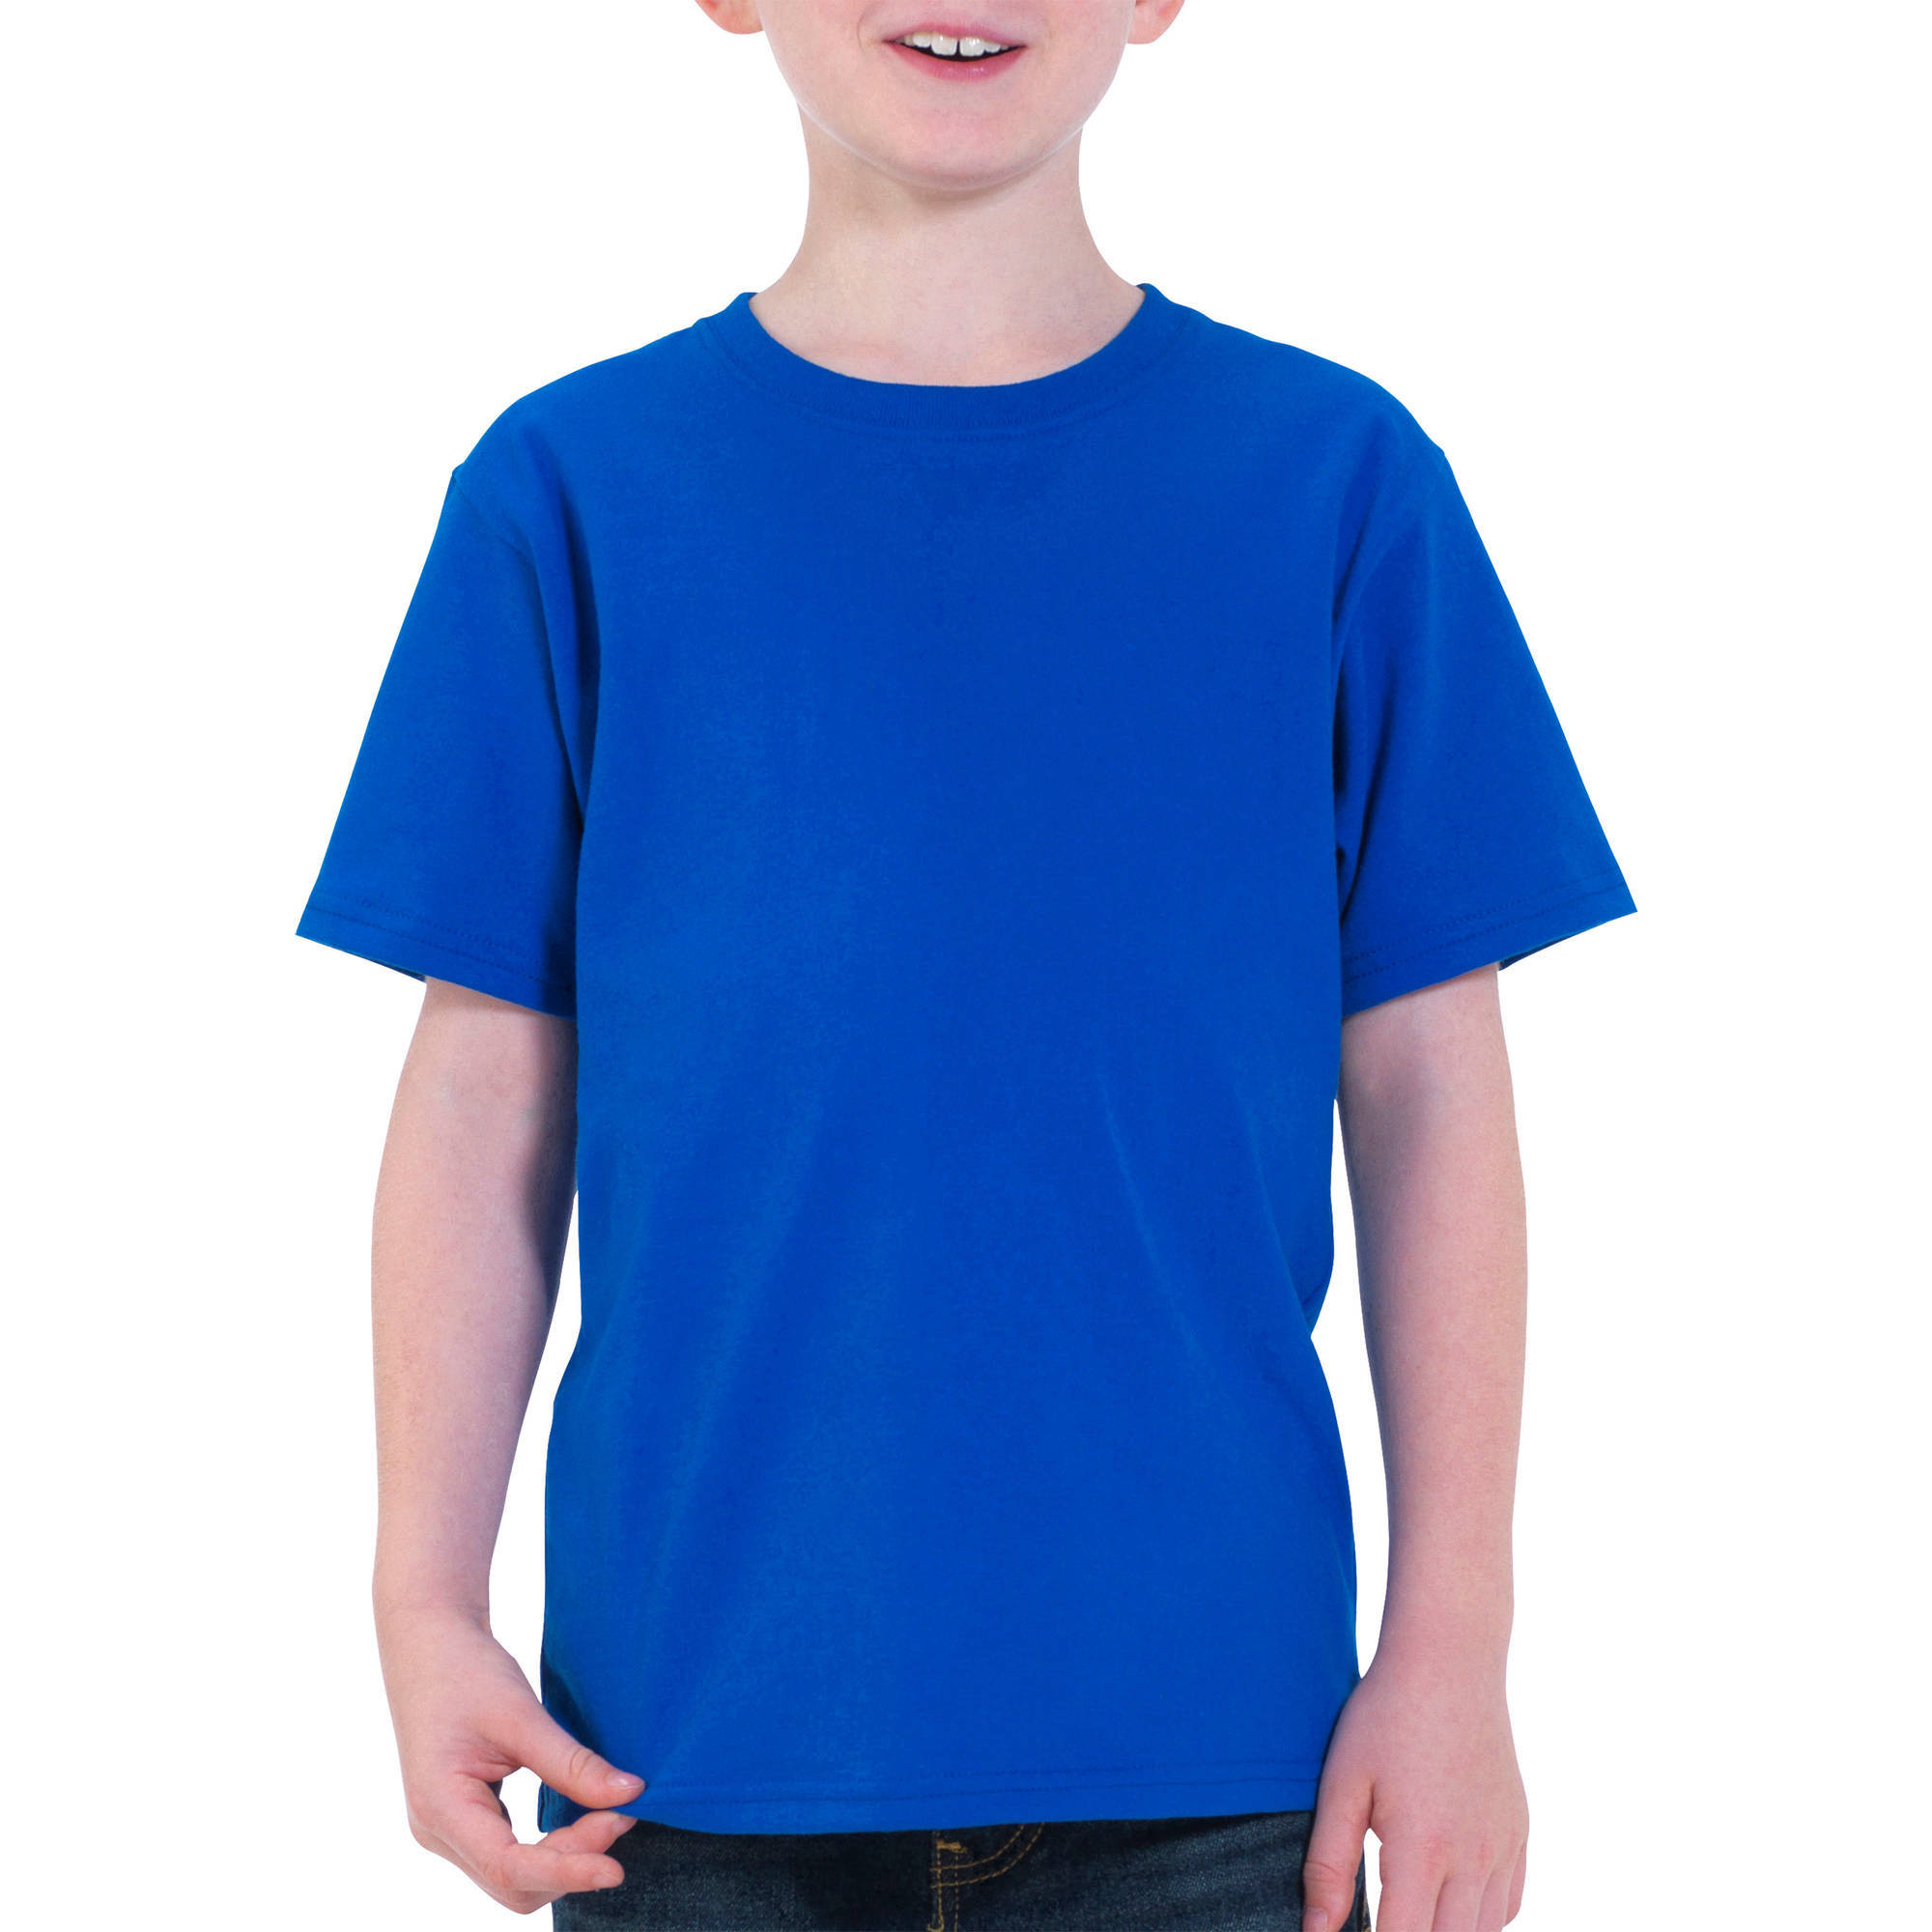 Fruit of the Loom Boys' Short Sleeve Tee